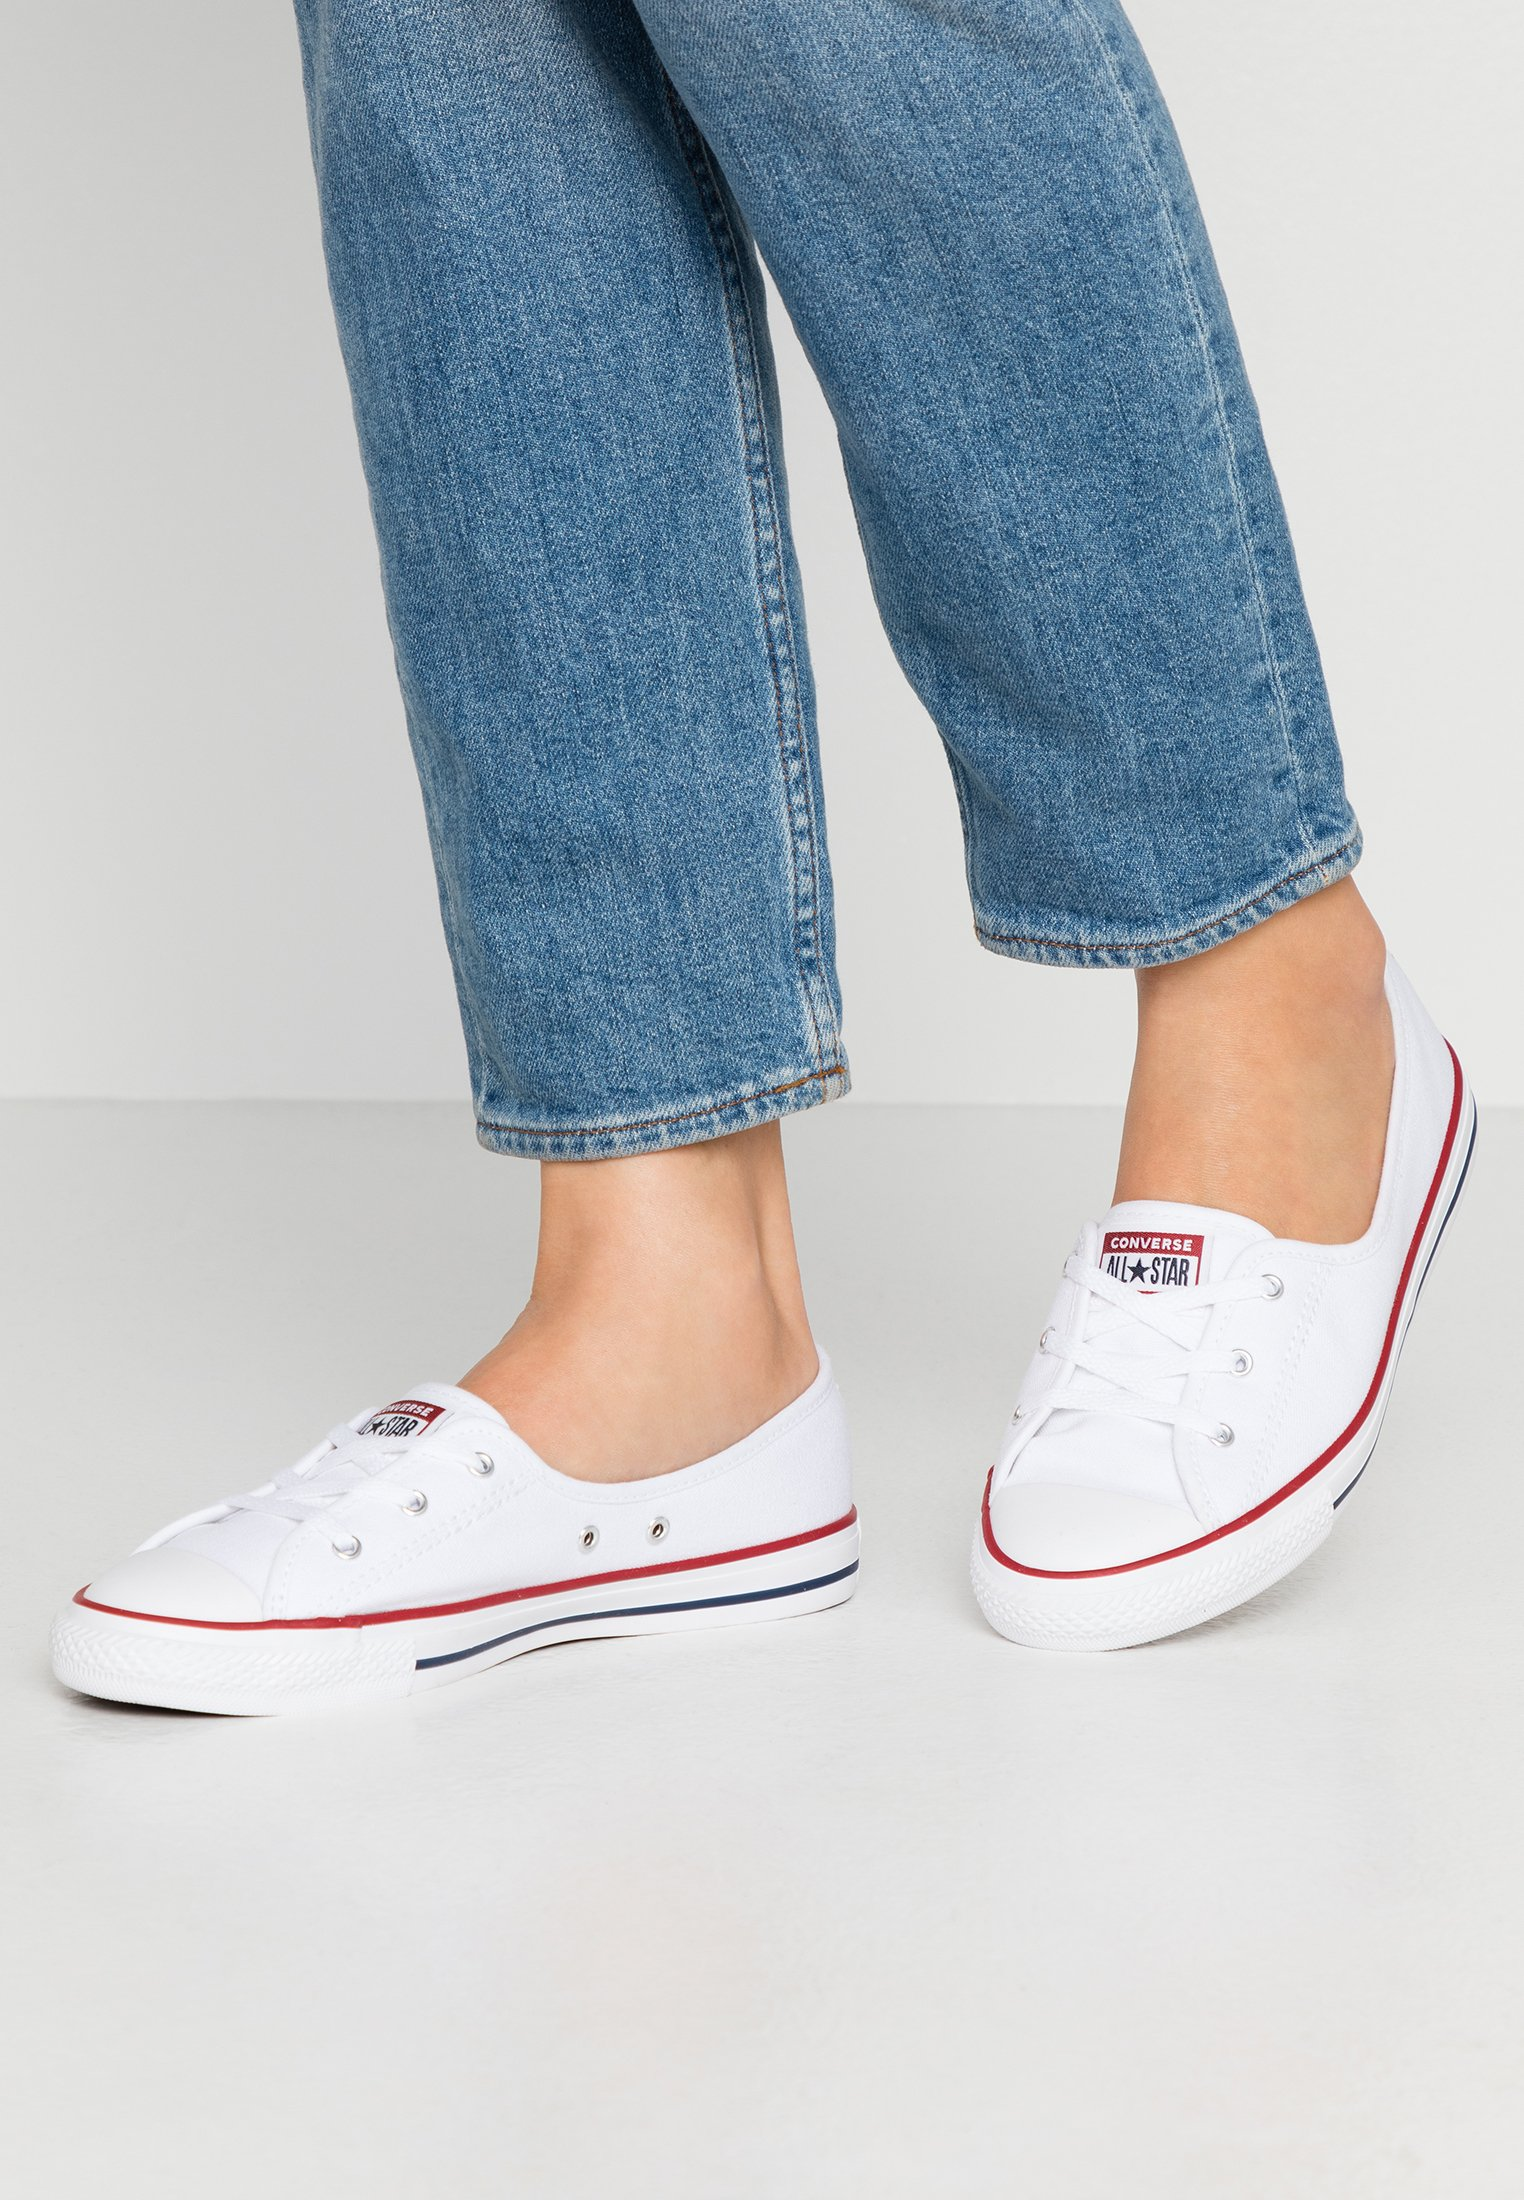 Converse CHUCK TAYLOR ALL STAR BALLET LACE Joggesko